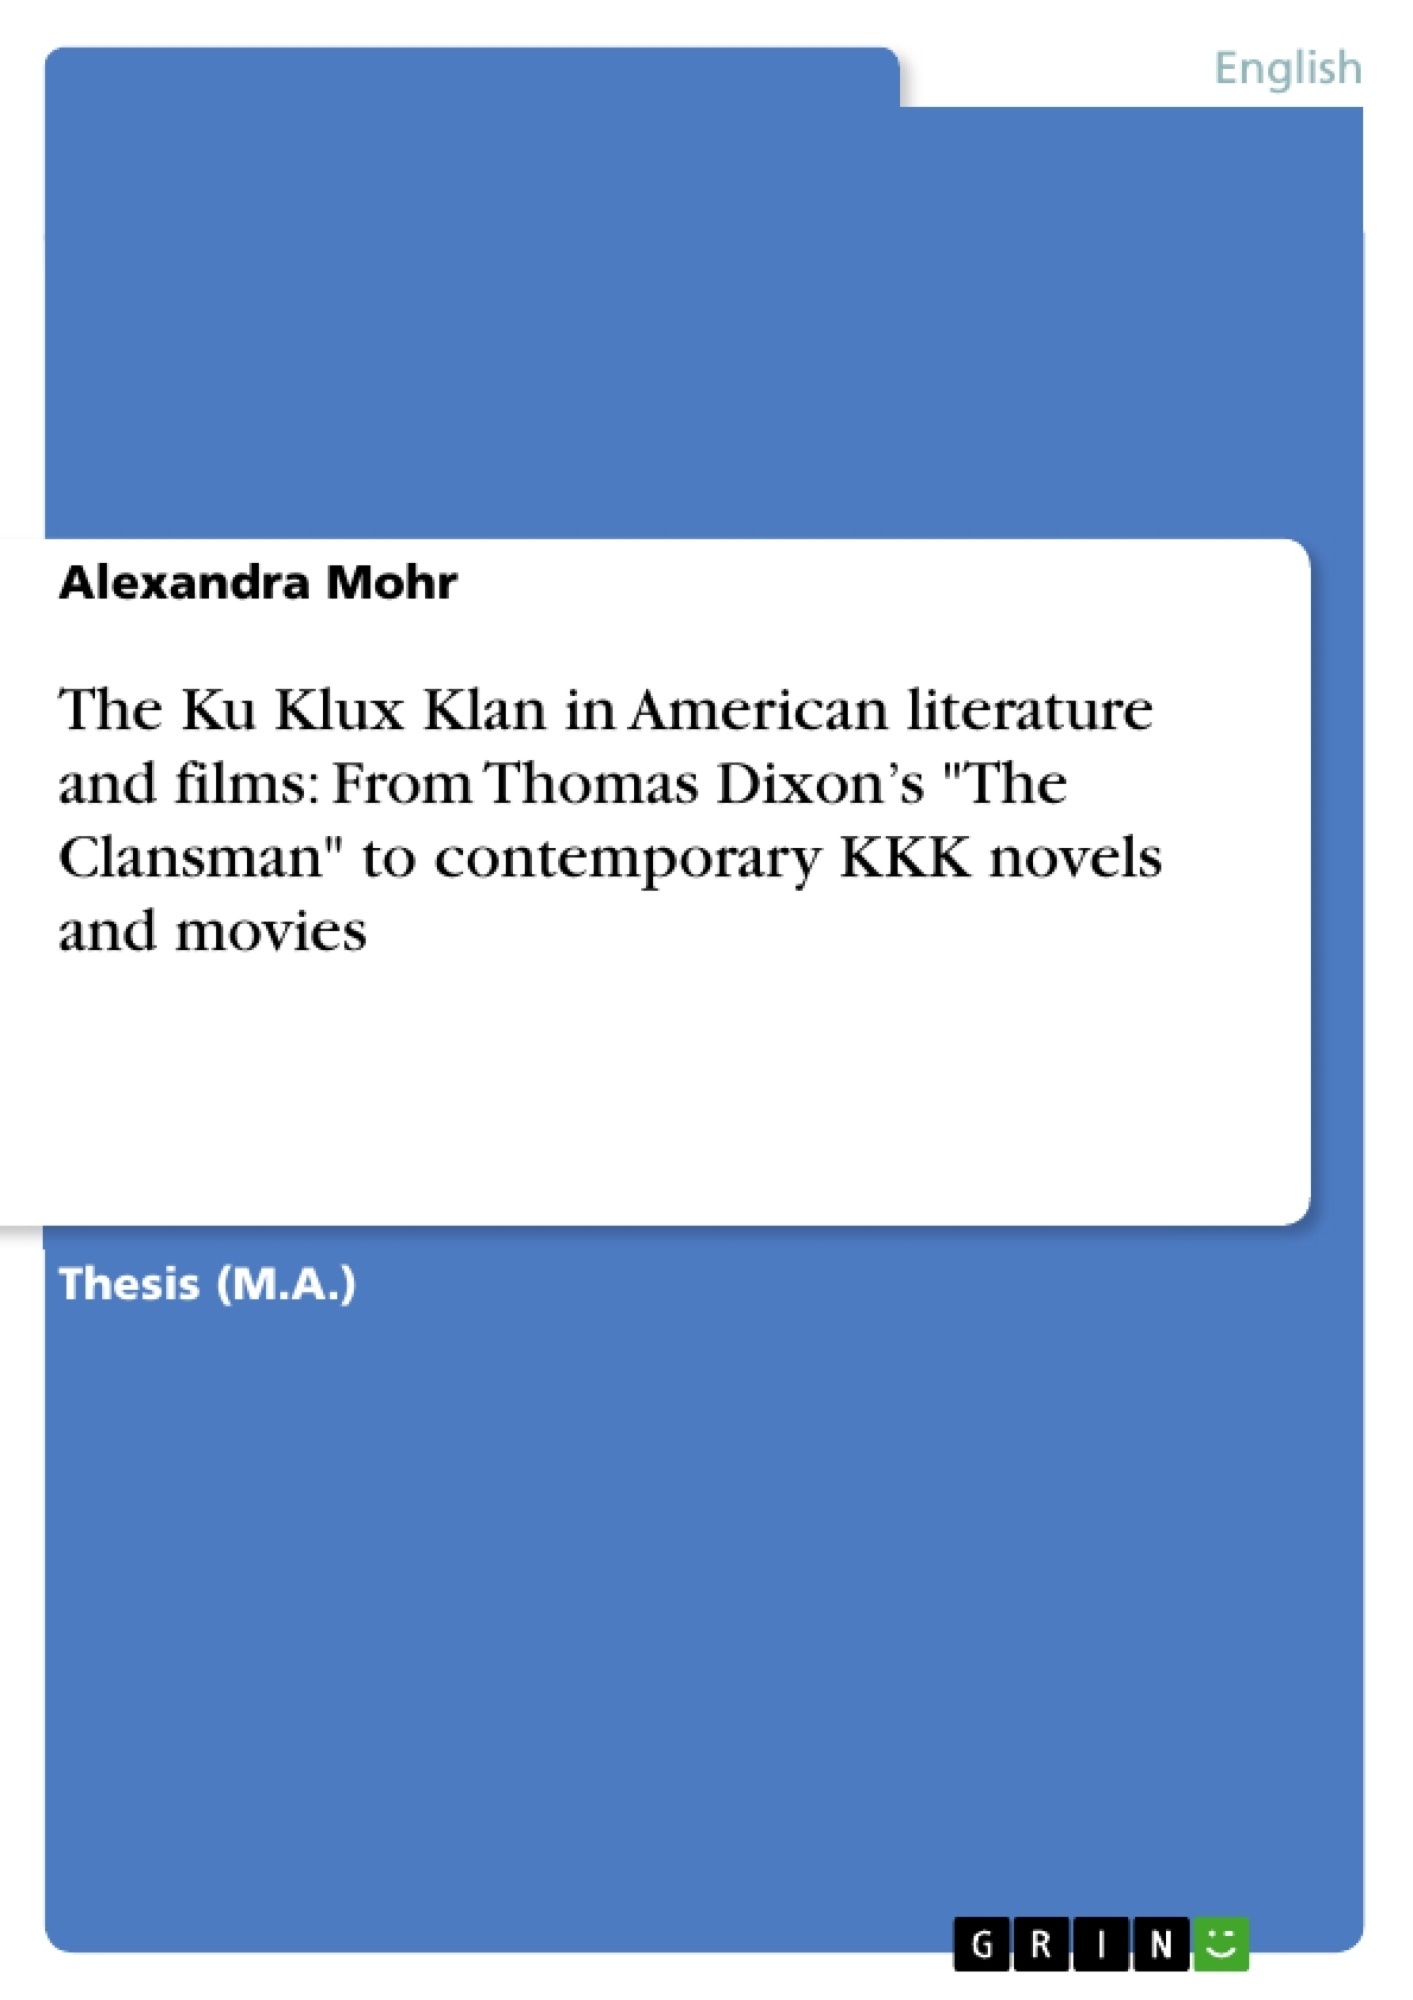 """Title: The Ku Klux Klan in American literature and films: From Thomas Dixon's """"The Clansman"""" to contemporary KKK novels and movies"""